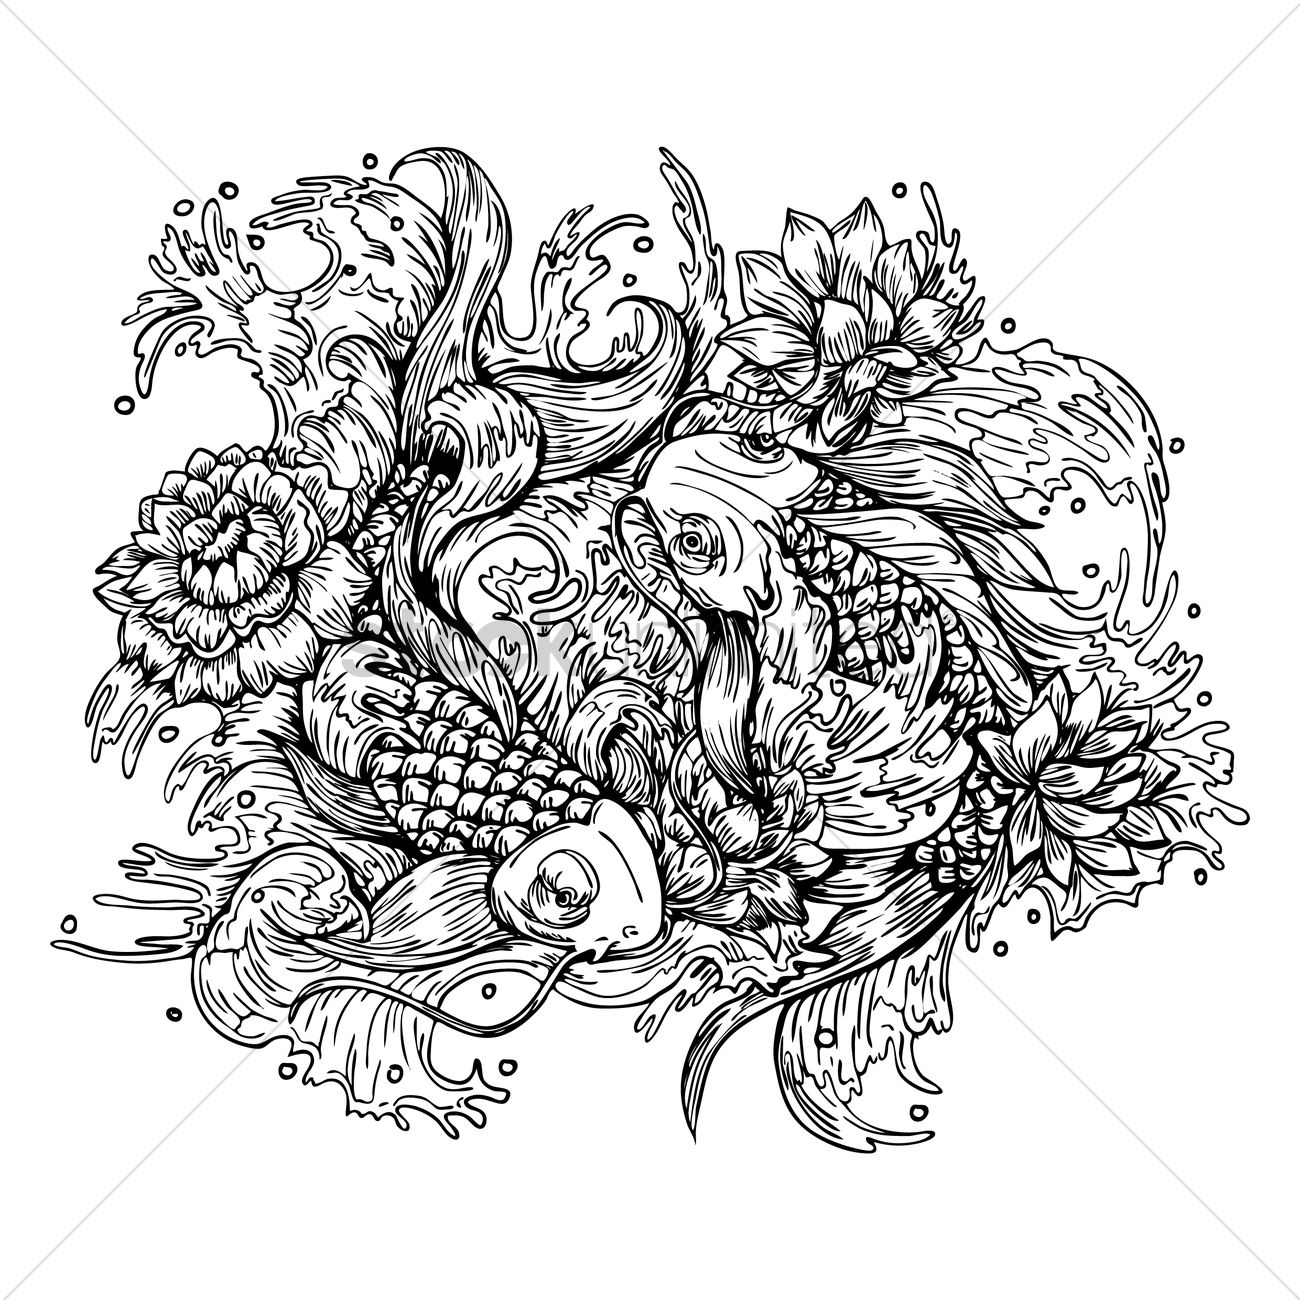 Intricate Koi Fish Designs Vector Graphic